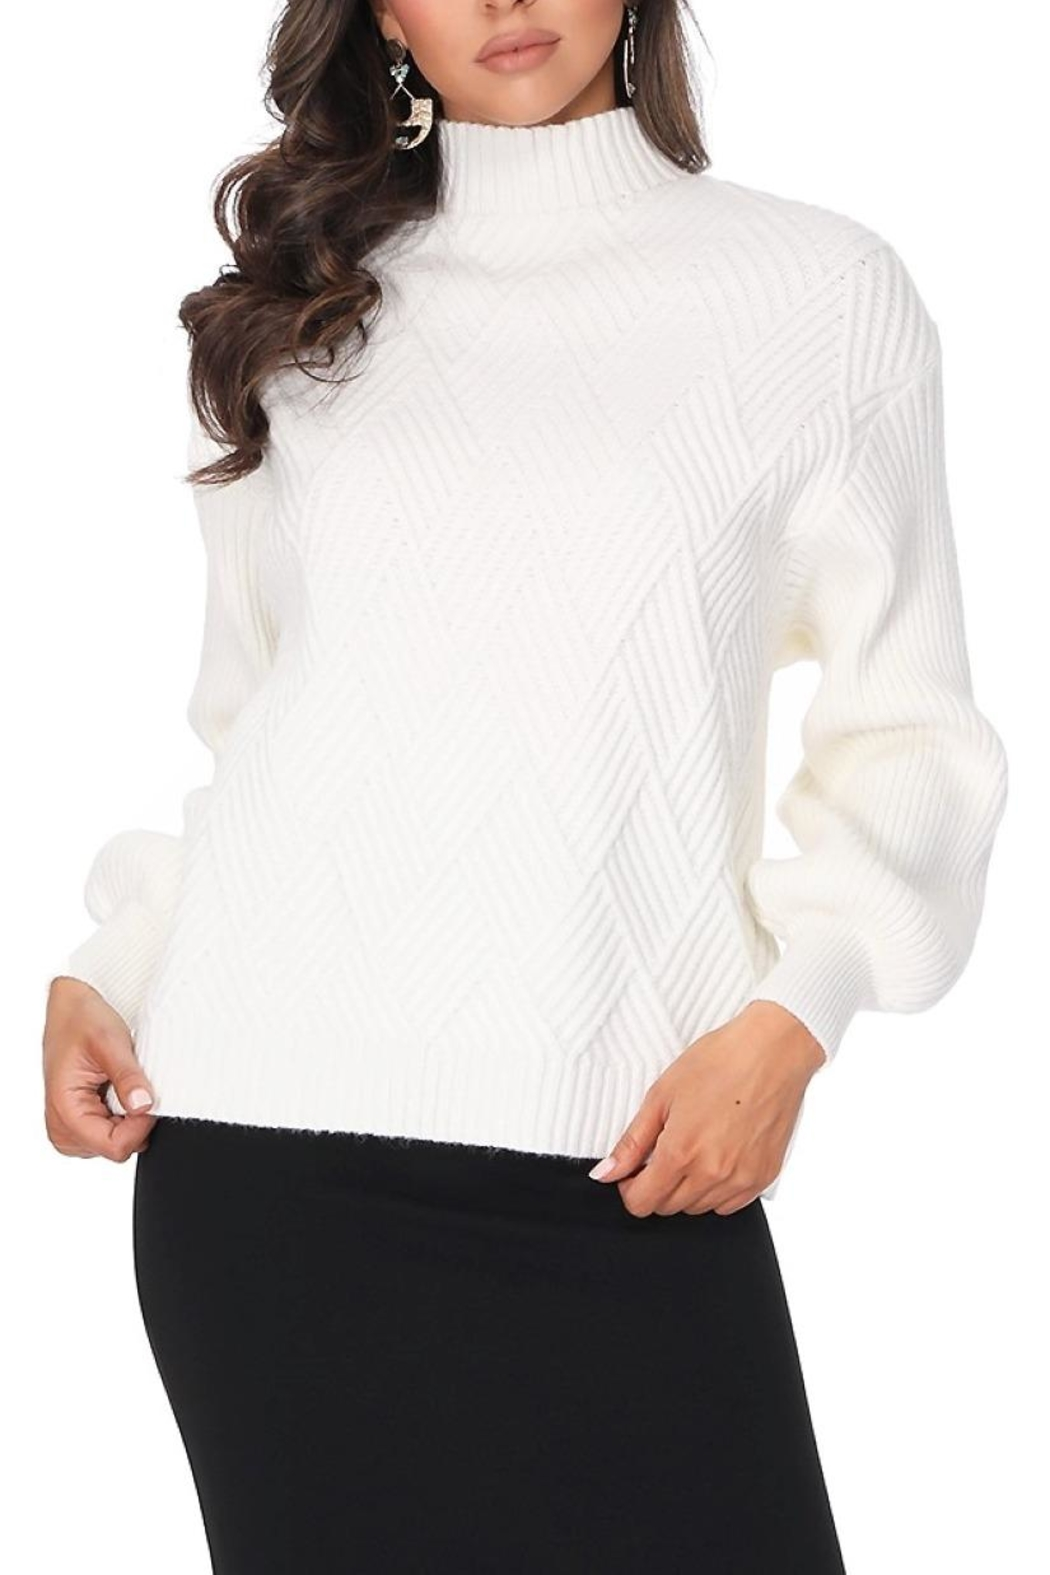 Aryeh White Turtle Neck Pullover - Main Image